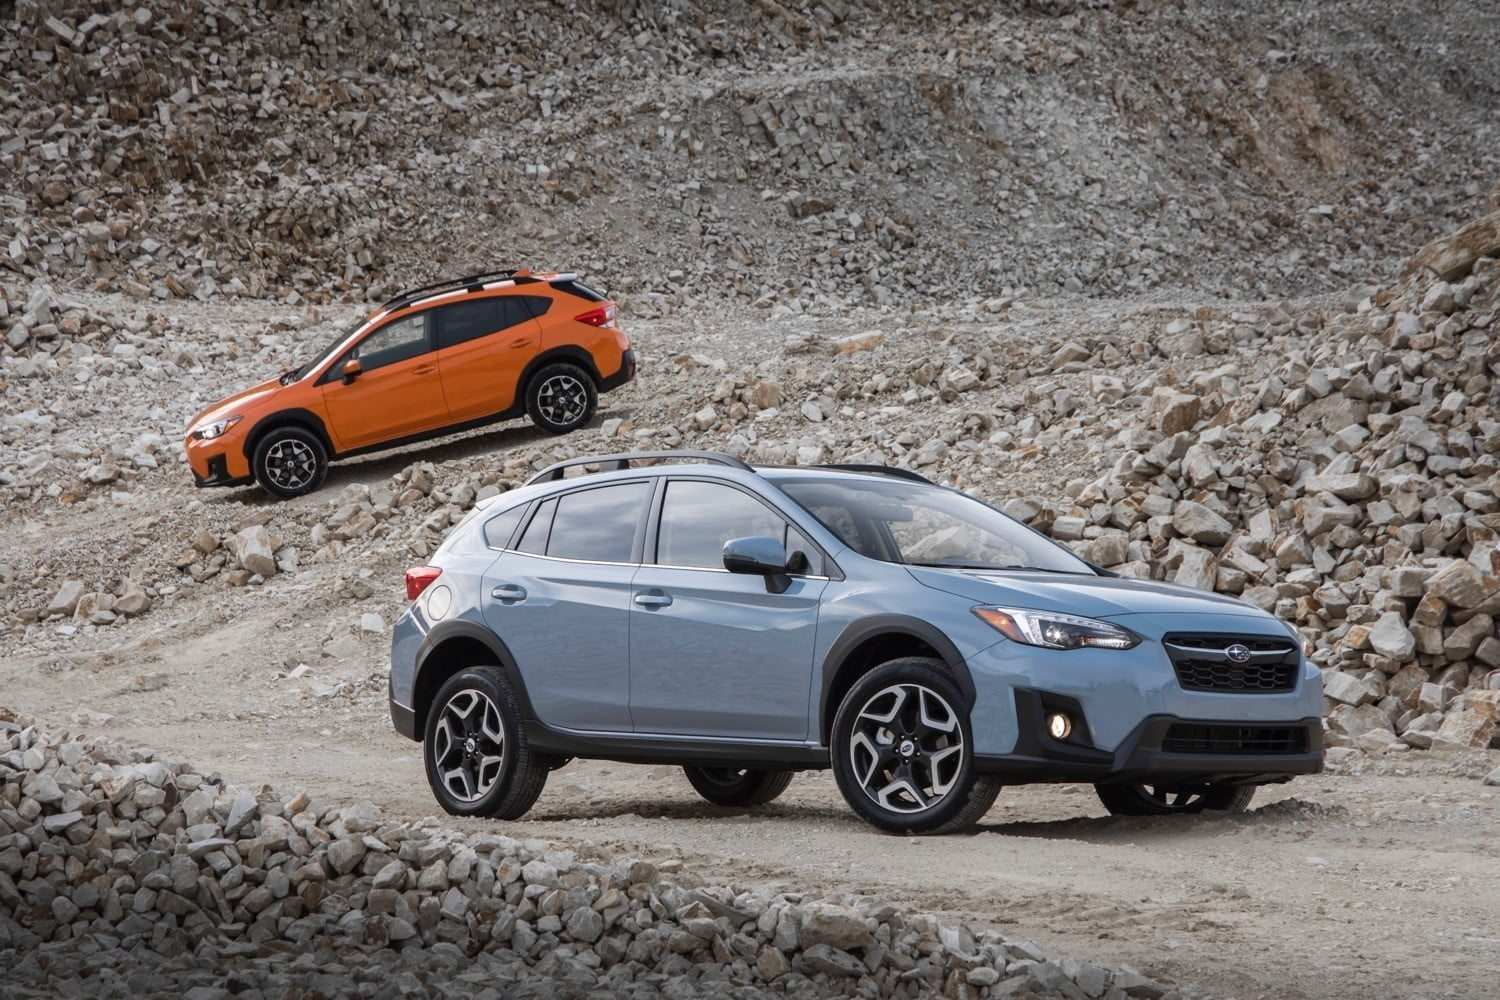 44 New When Do Subaru 2019 Come Out Concept And Review